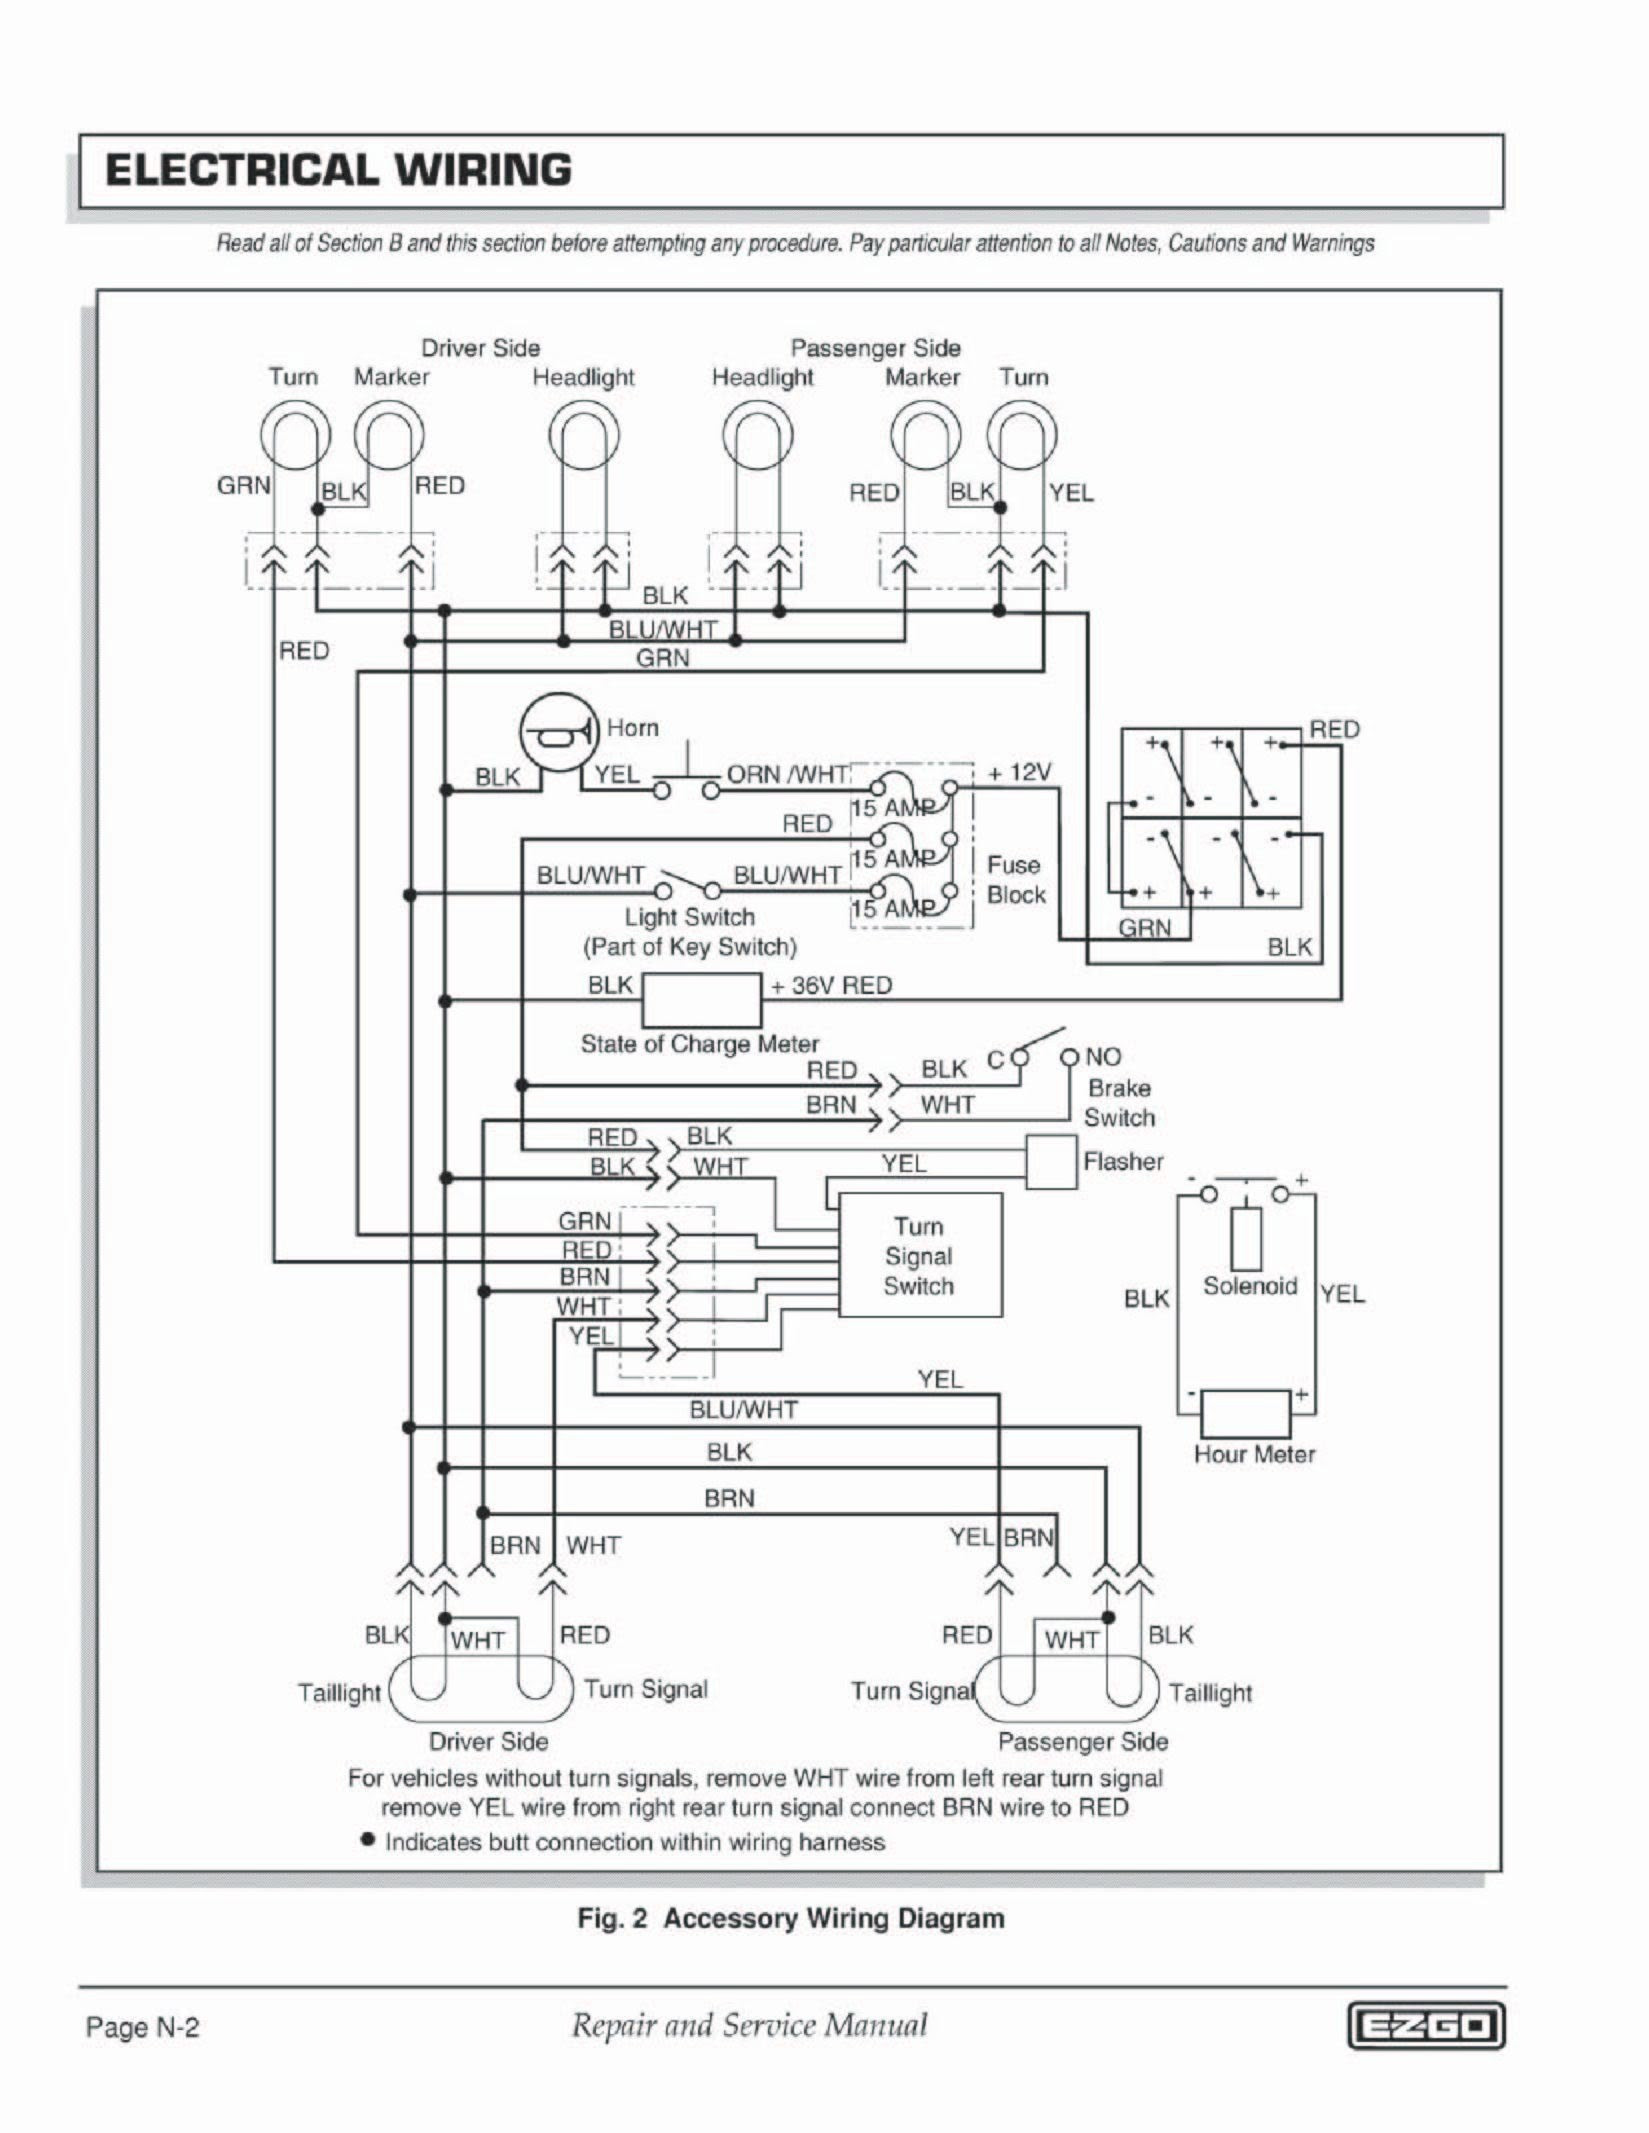 Wiring Yale Diagram Glc135v